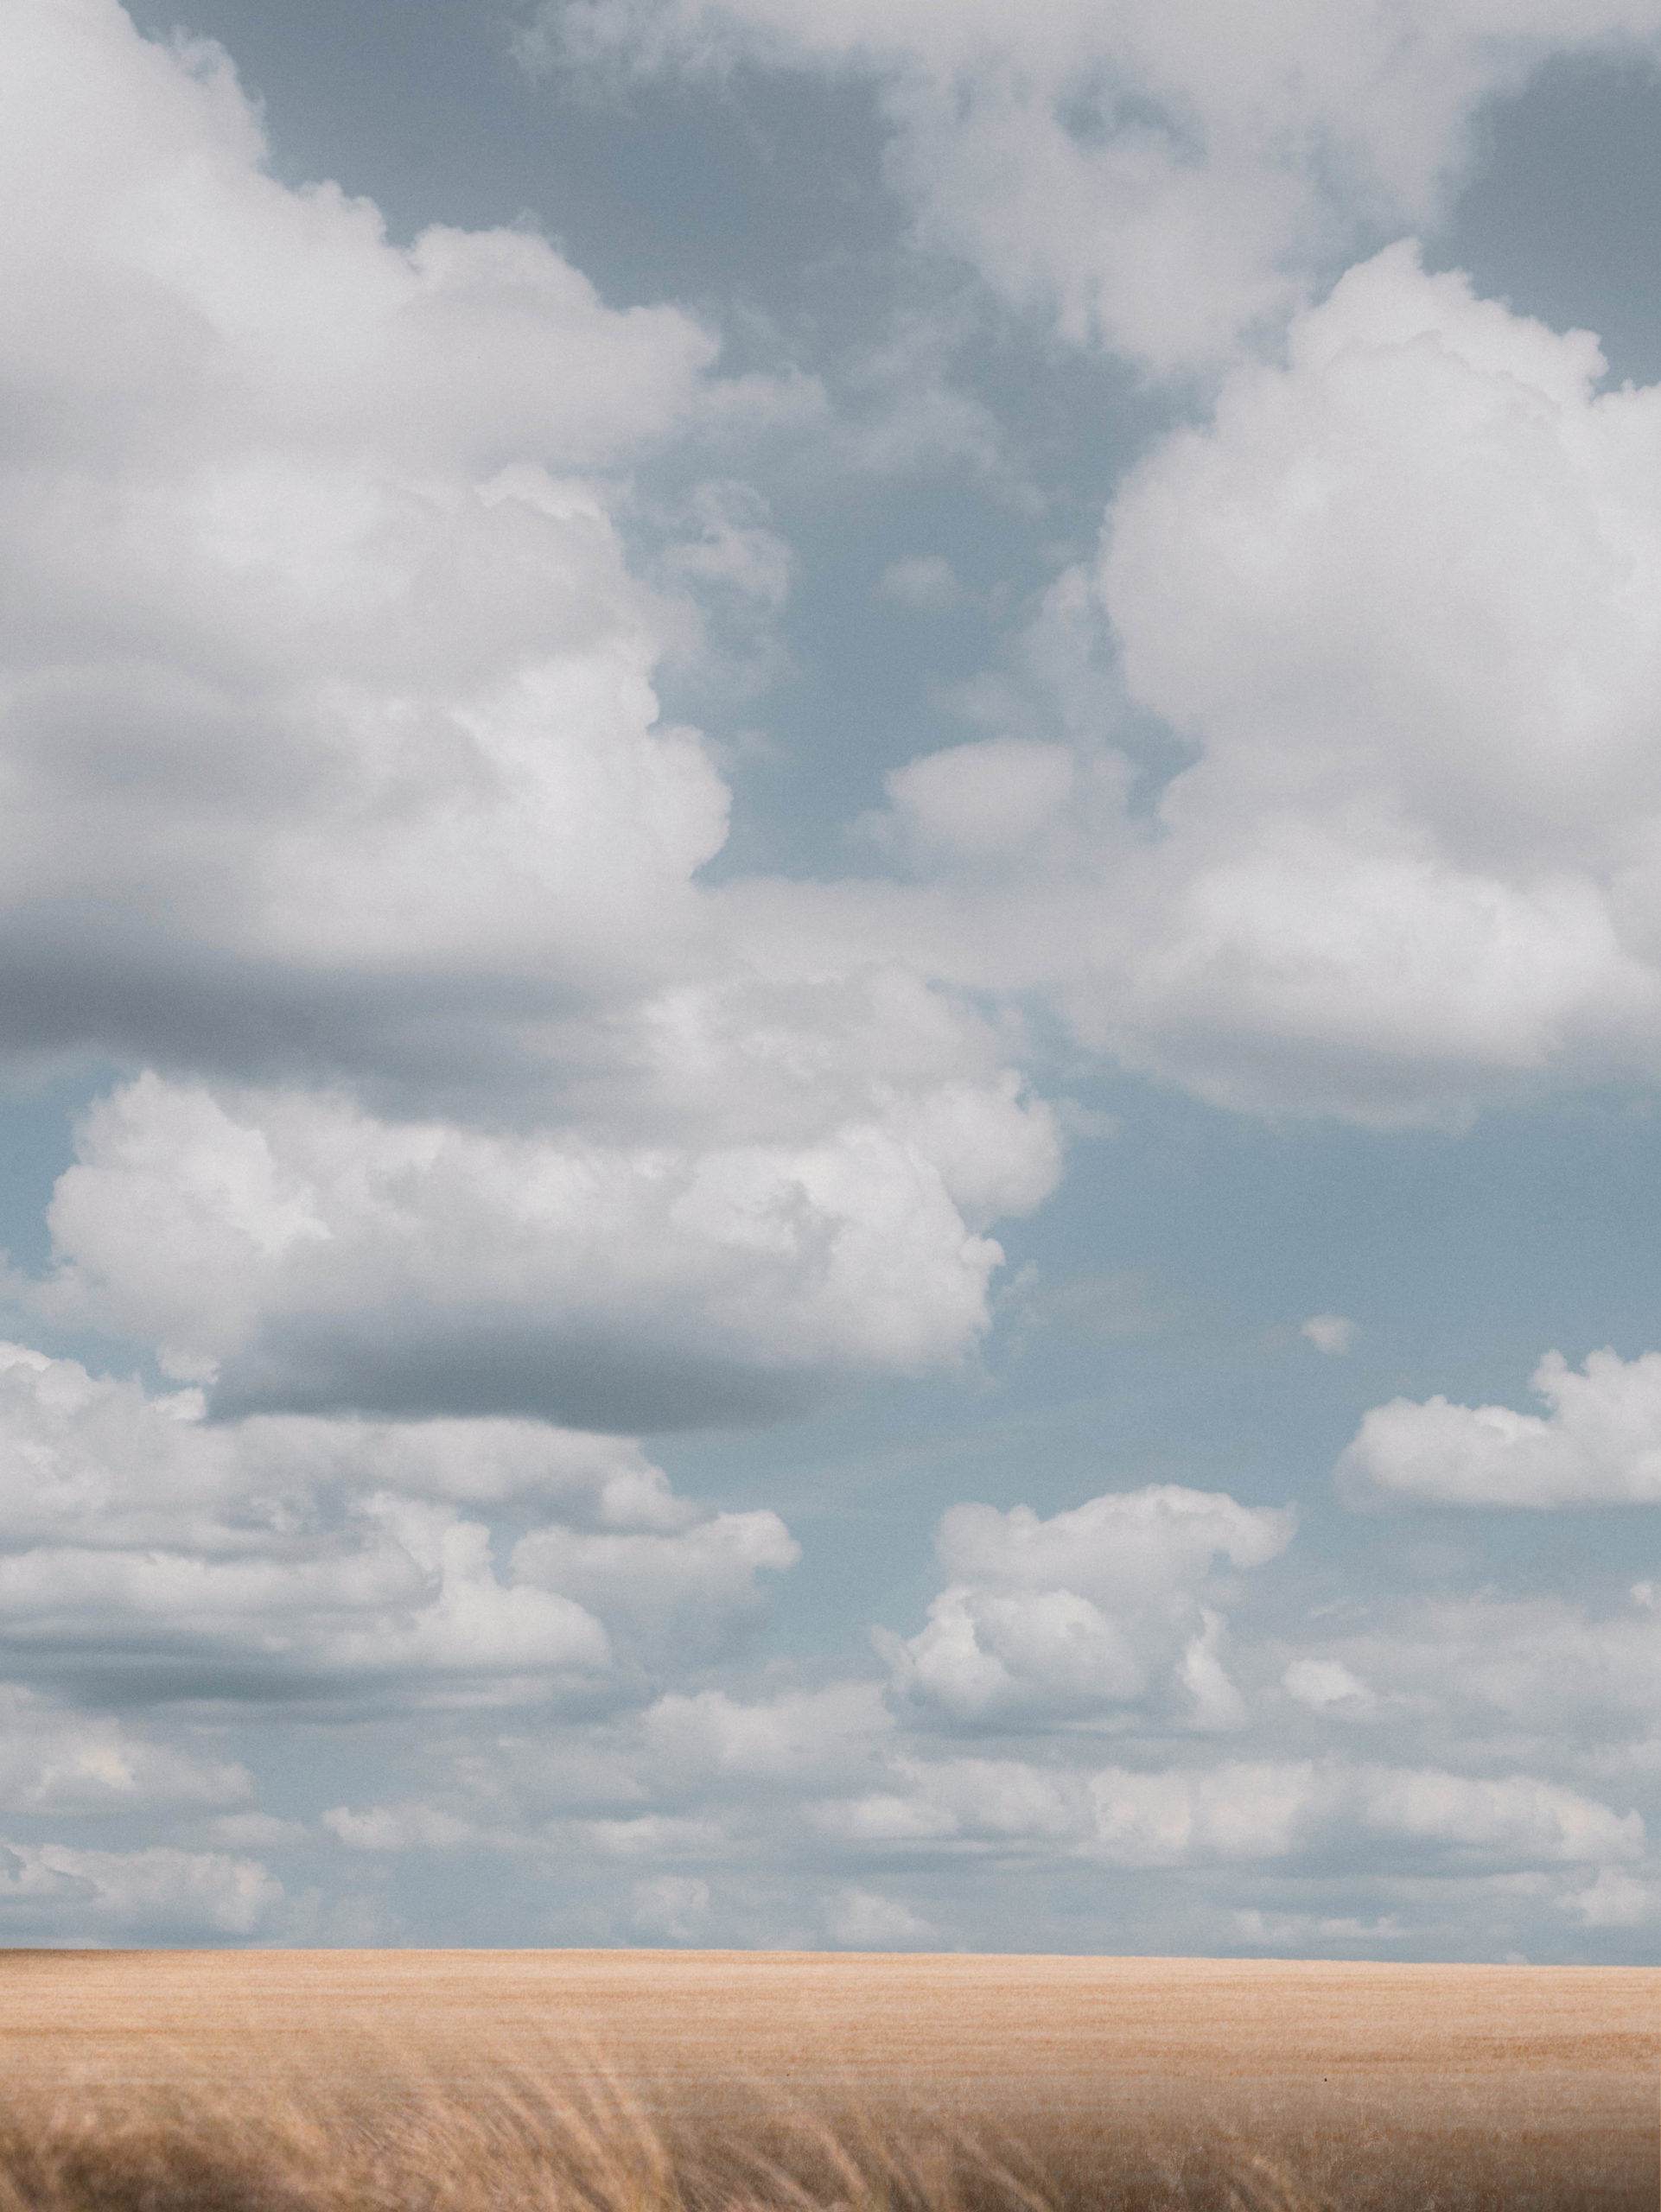 hd sky background by nsb